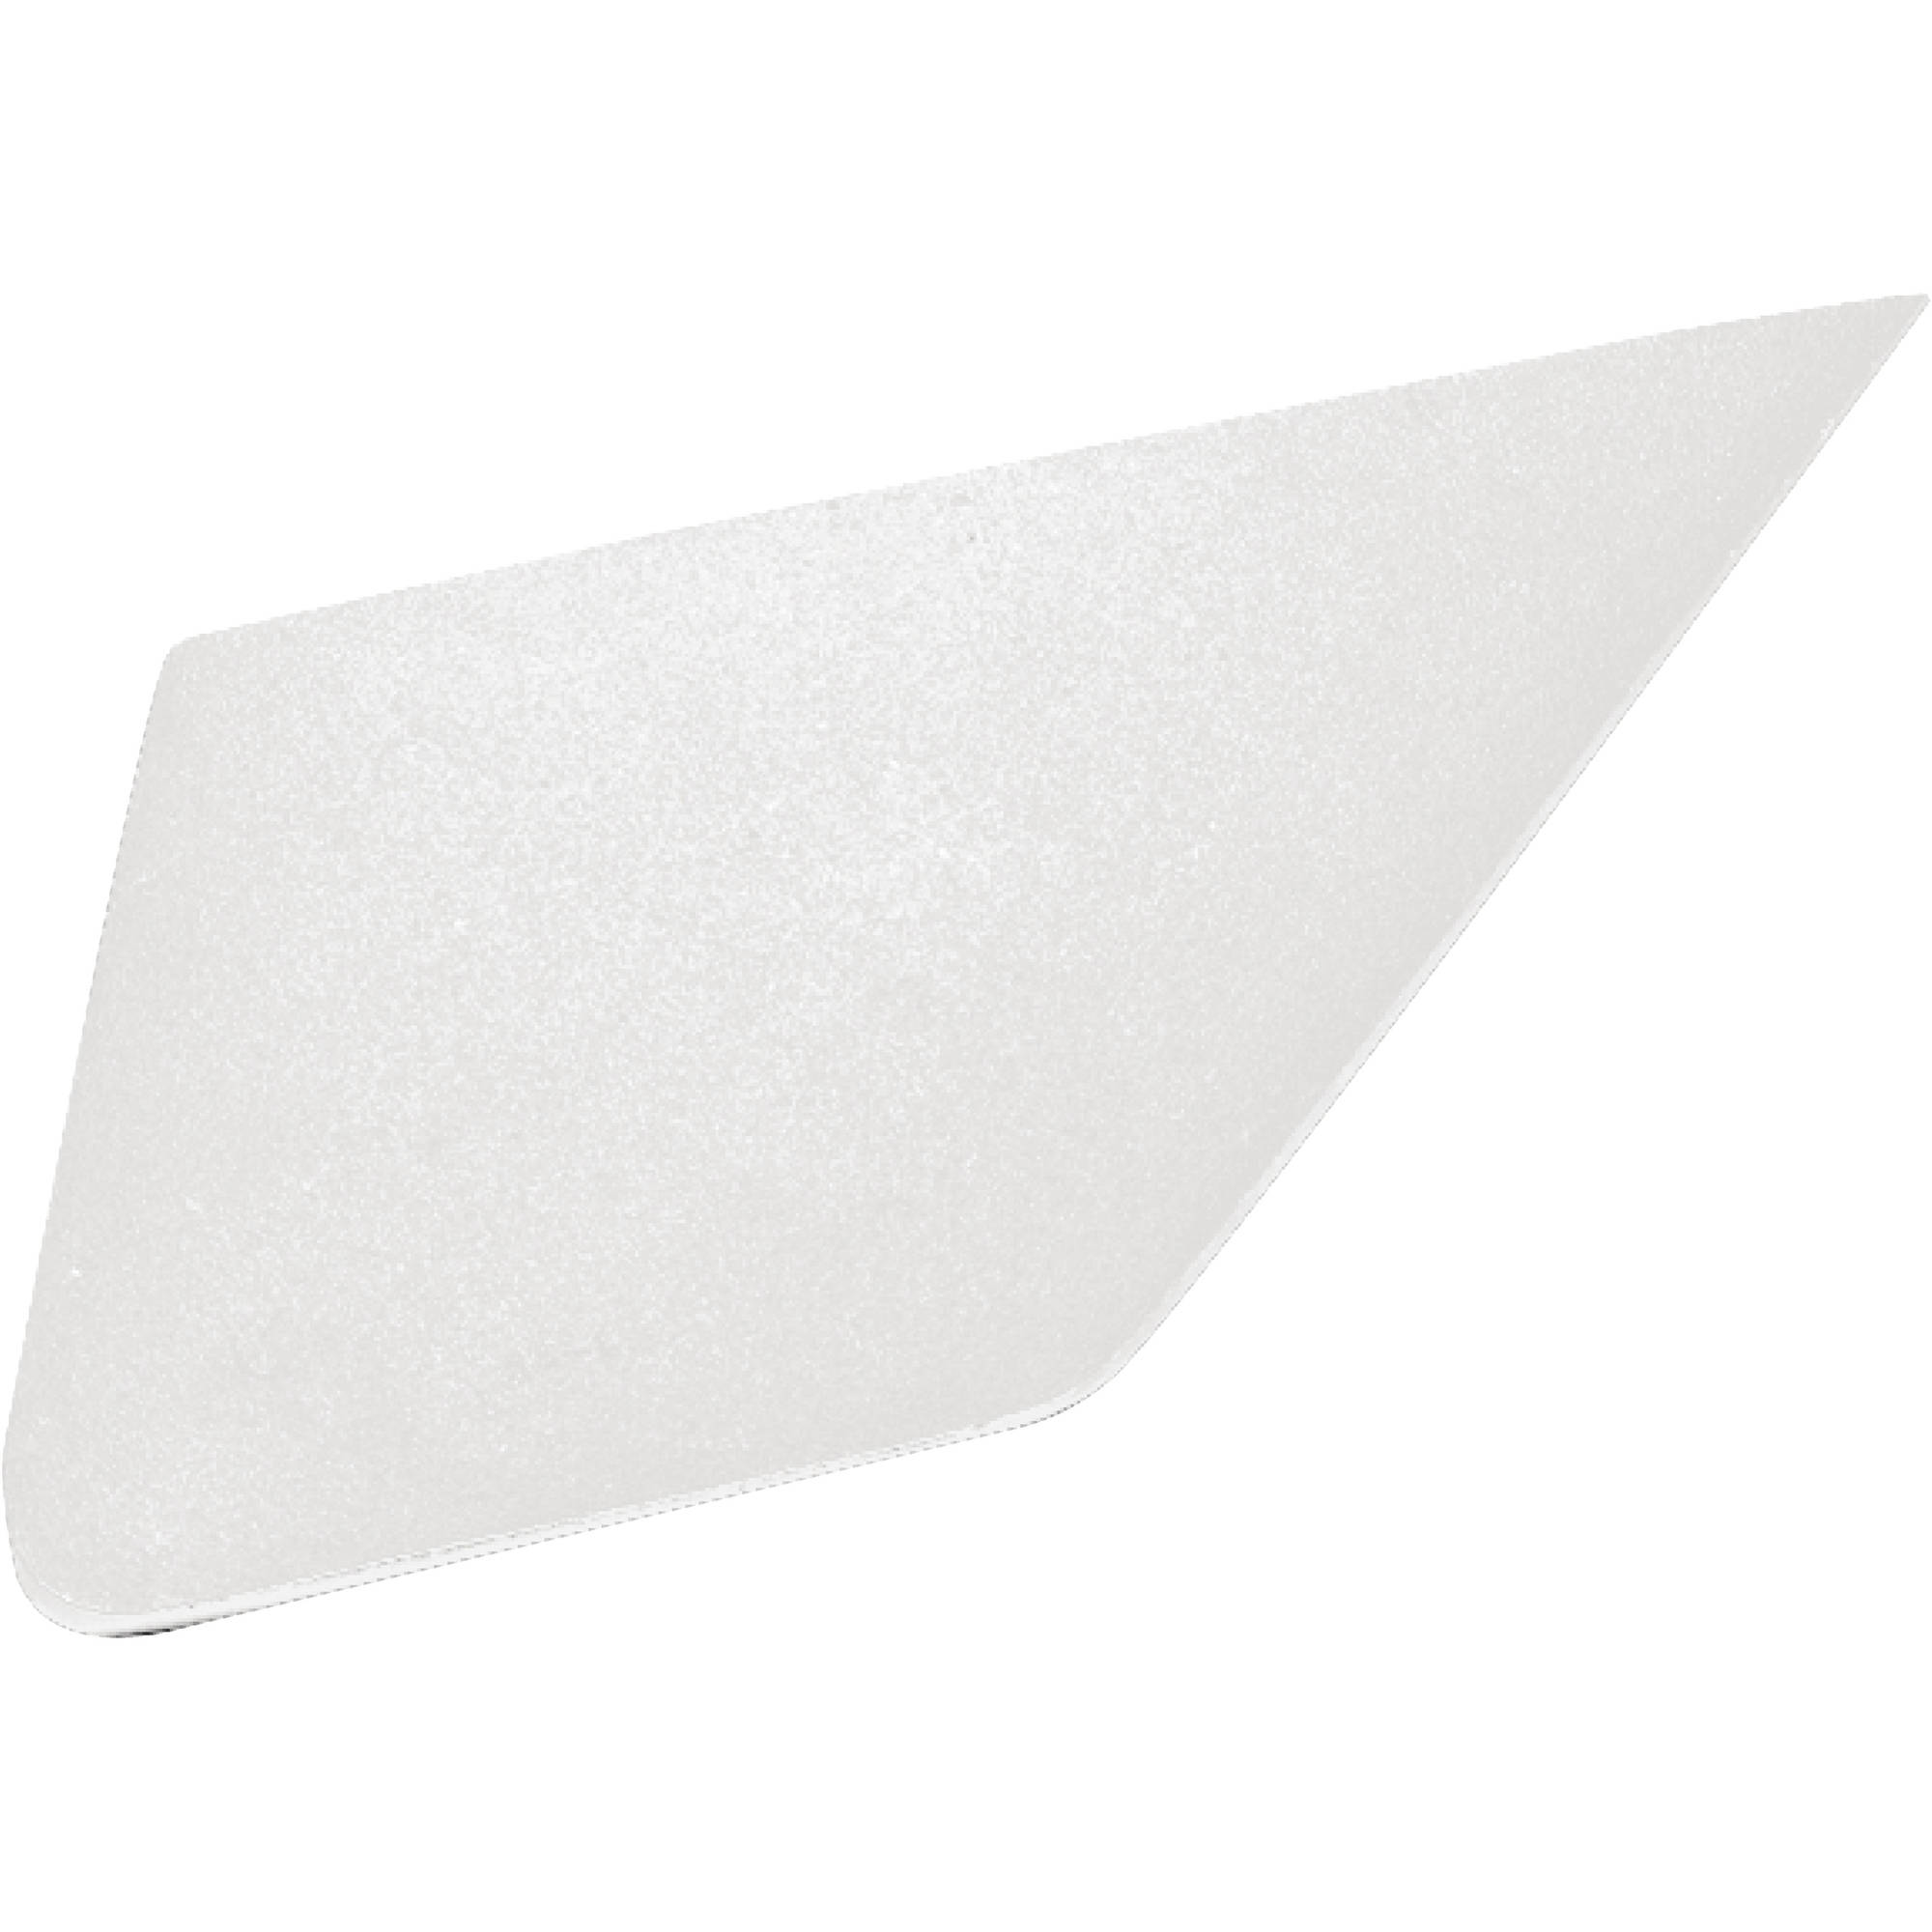 T-H Marine Replacement Skeg For Bombardier, Evinrude, Johnson, OMC, Yamaha V6 Outboards by T-H Marine Supplies